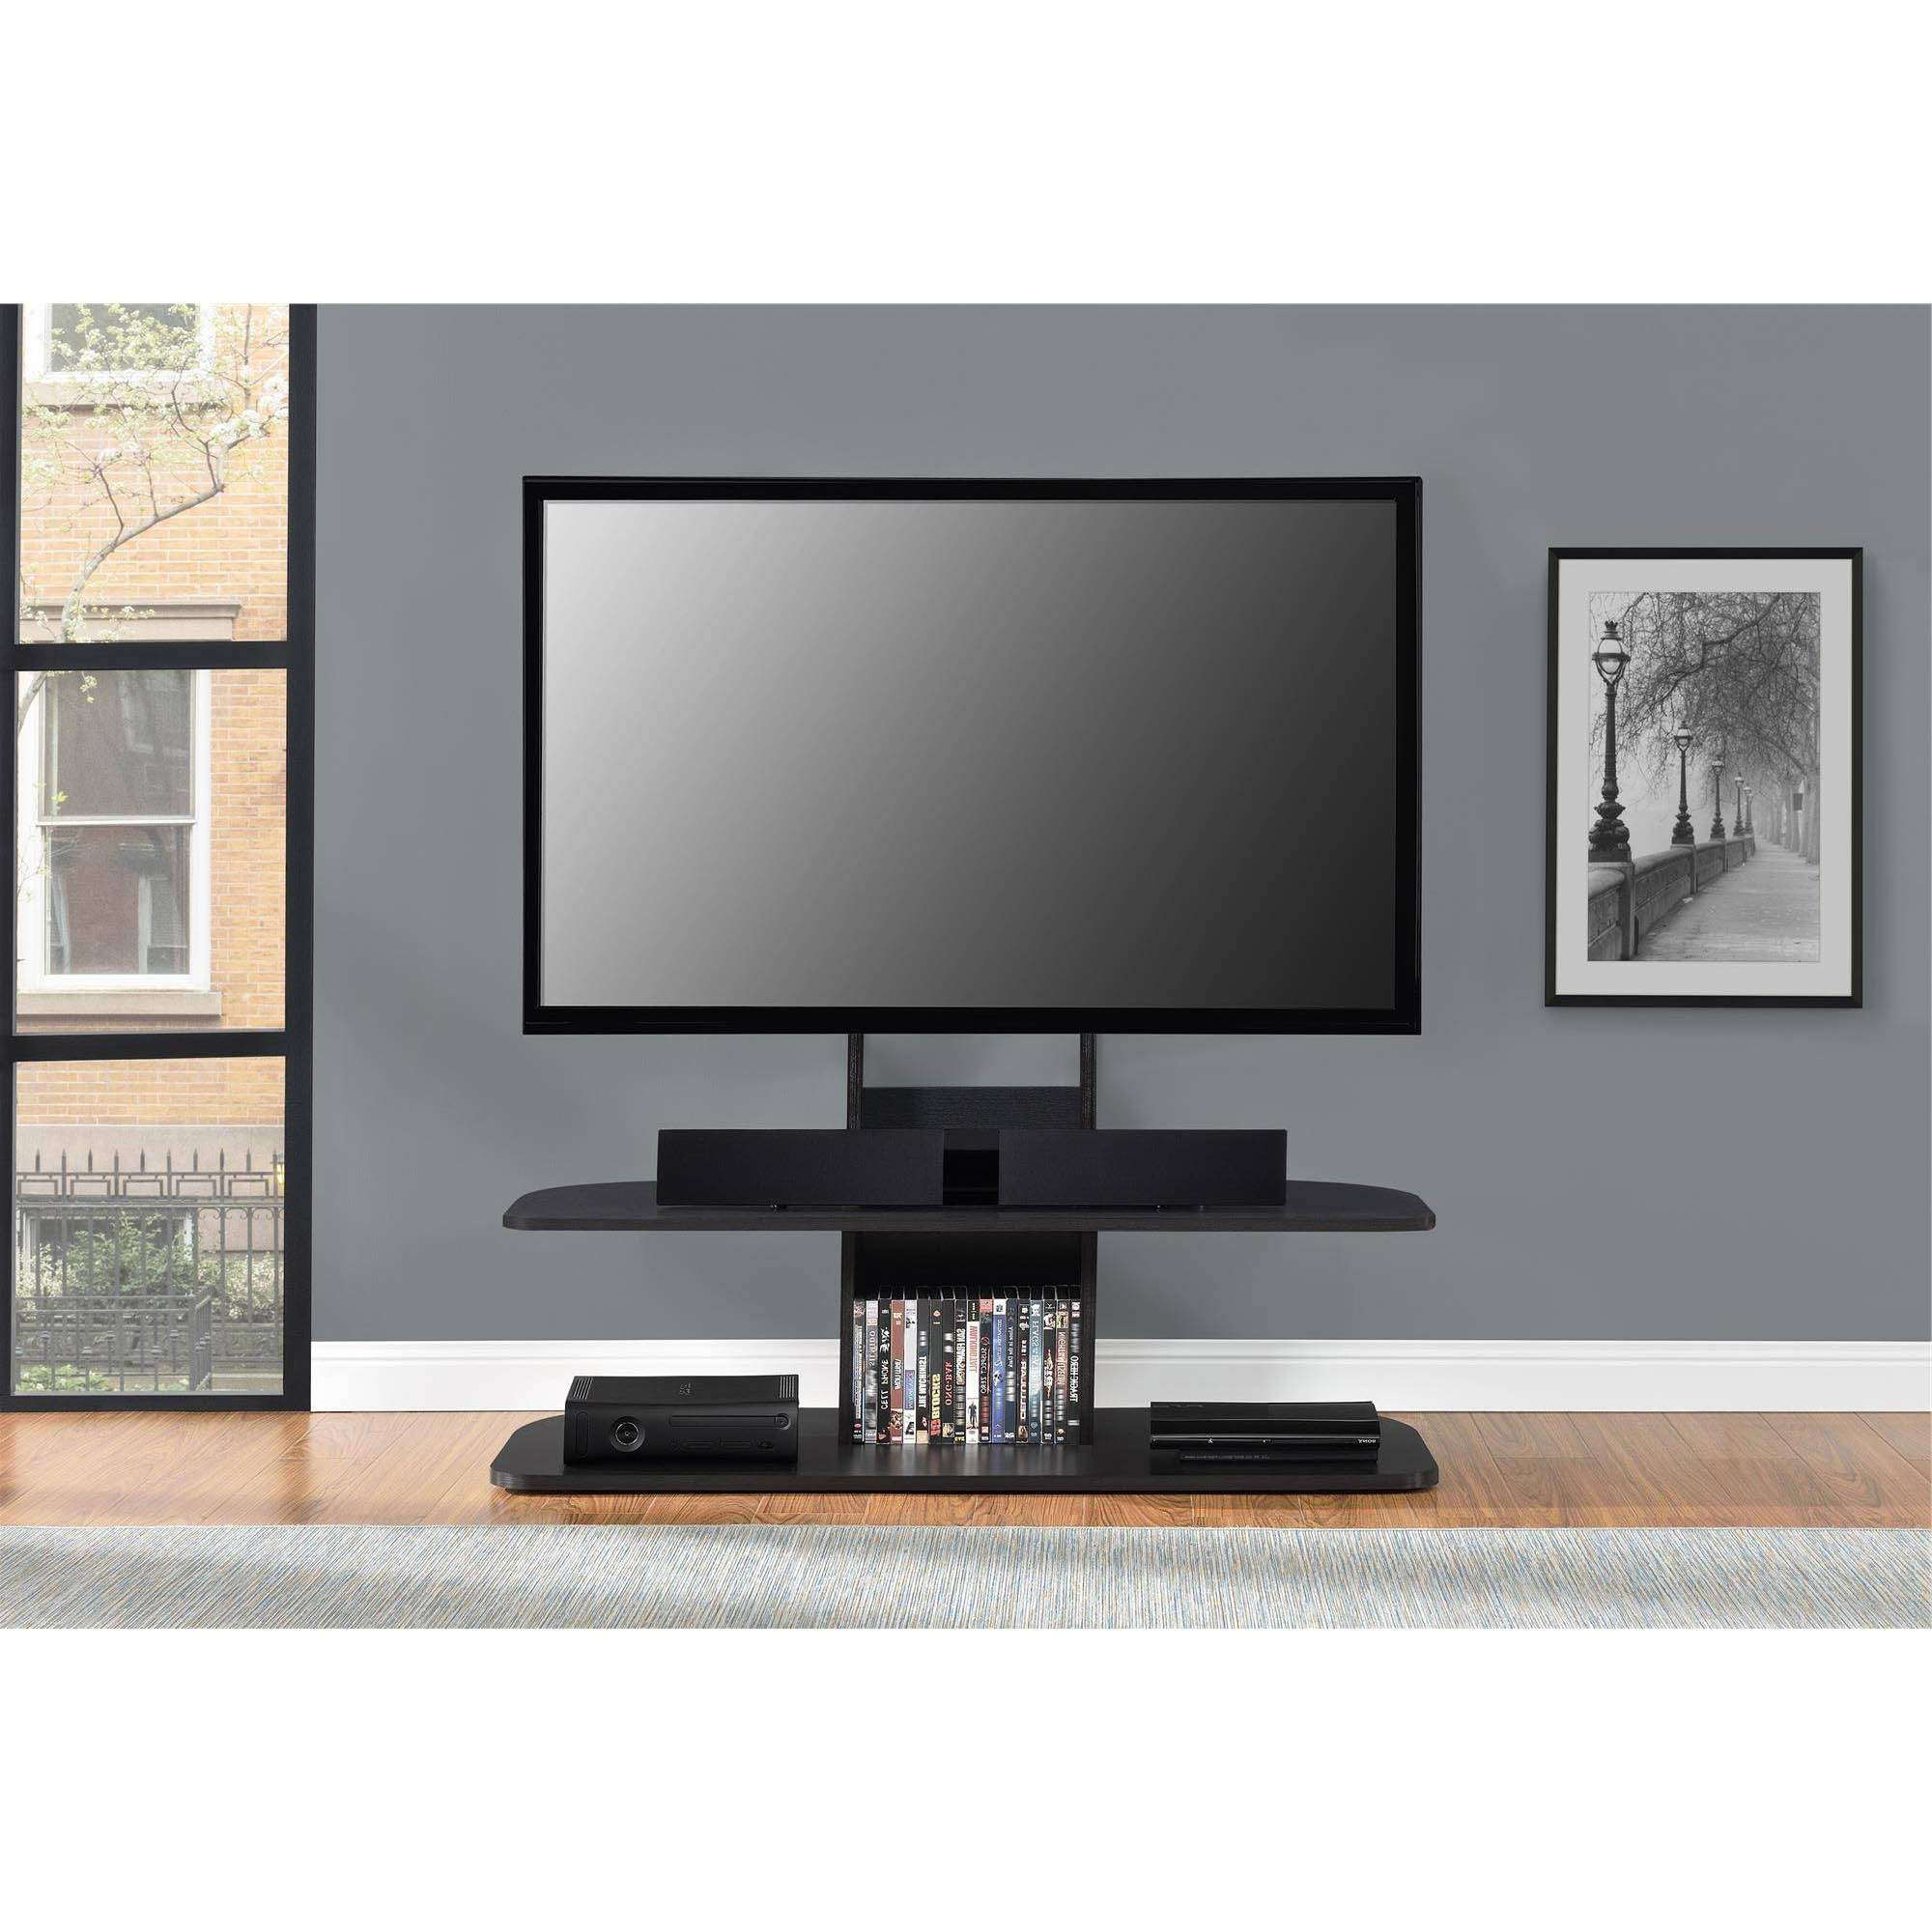 Good Tv Stands 60 Inch Flat Screens 18 For Your Modern Home Decor Within Modern 60 Inch Tv Stands (View 13 of 20)